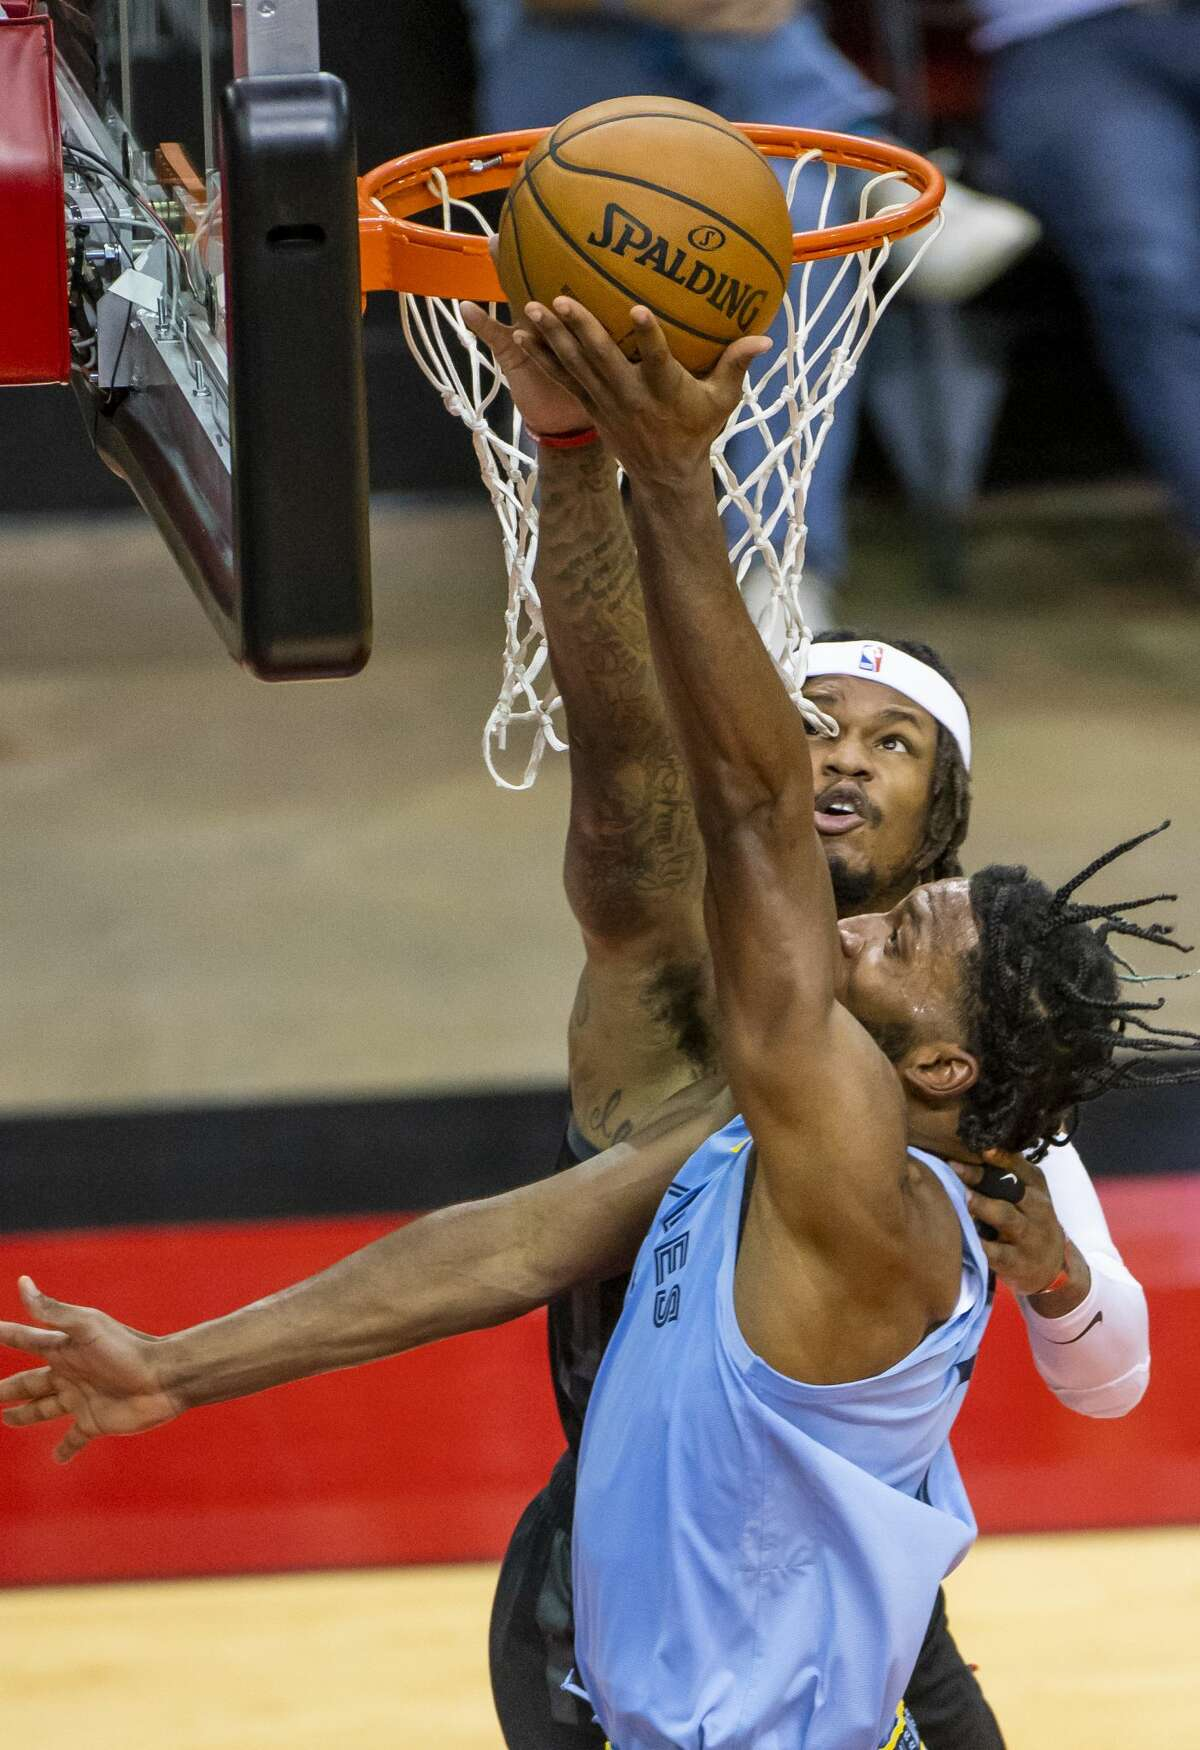 Houston Rockets guard Ben McLemore (16) tries to block a shot by Memphis Grizzlies forward Justise Winslow (7) during the third quarter of an NBA basketball game between the Houston Rockets and Memphis Grizzlies on Sunday, Feb. 28, 2021, at Toyota Center in Houston.